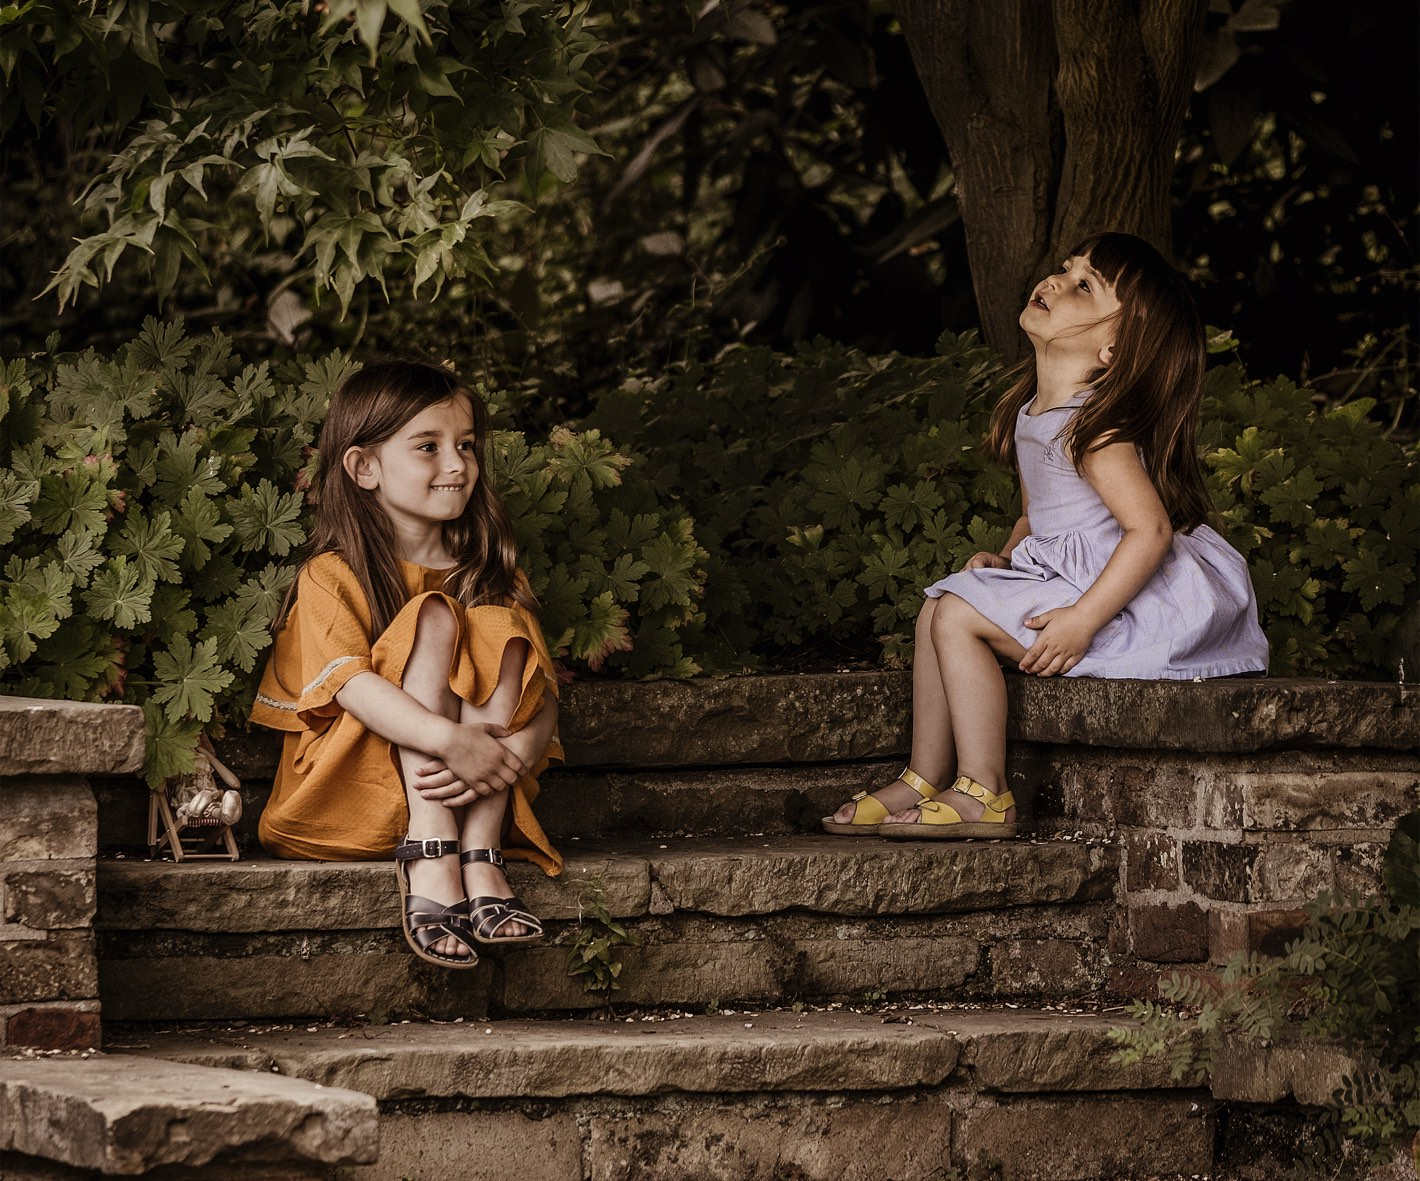 Image from a Children of London photoshoot